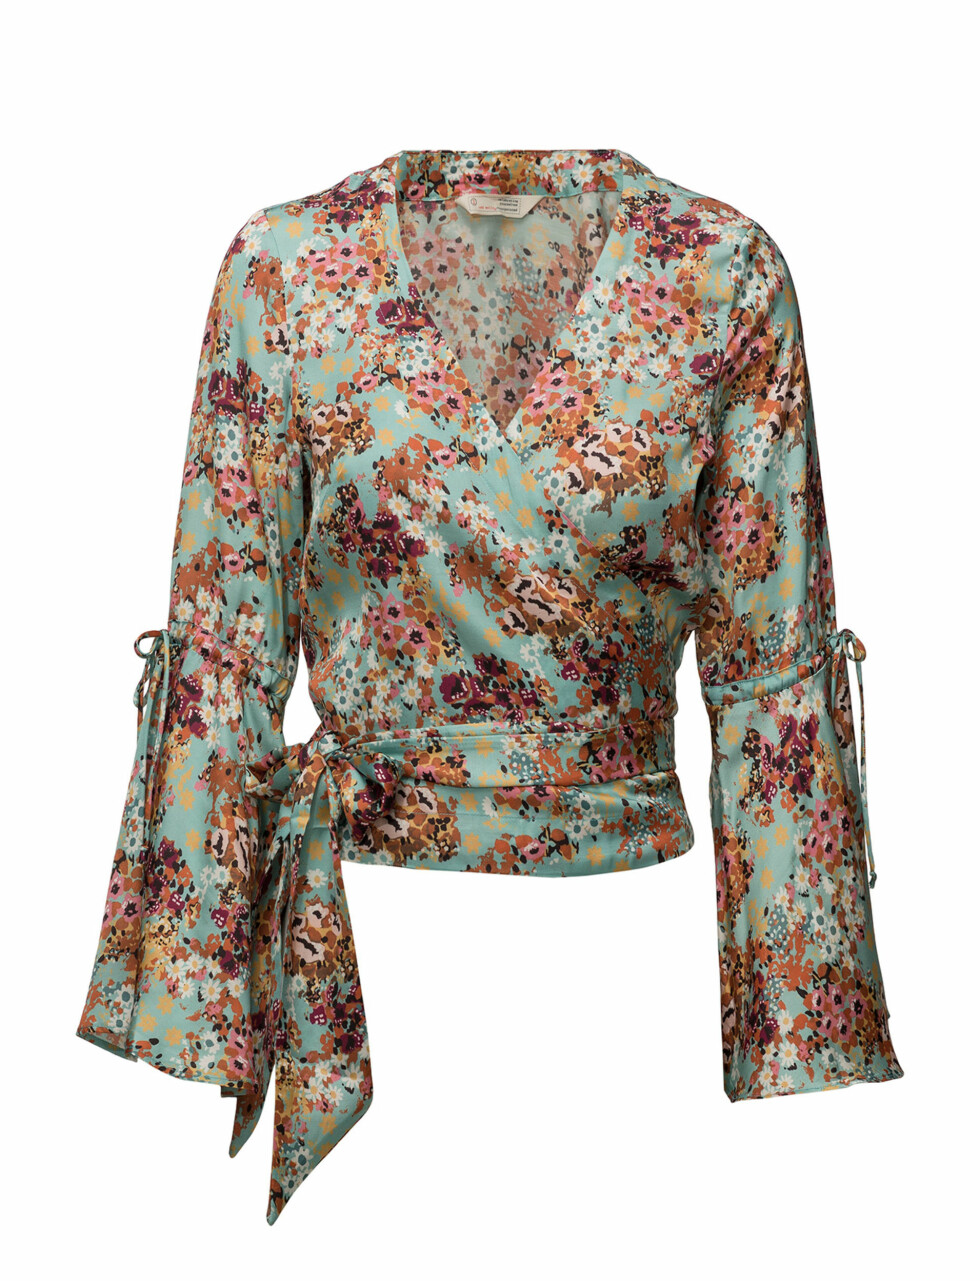 Fra Odd Molly |1395,-| https://www.boozt.com/no/no/odd-molly/lucky-draw-flower-blouse_18048450/18048456?navId=67380&group=listing&position=1000000